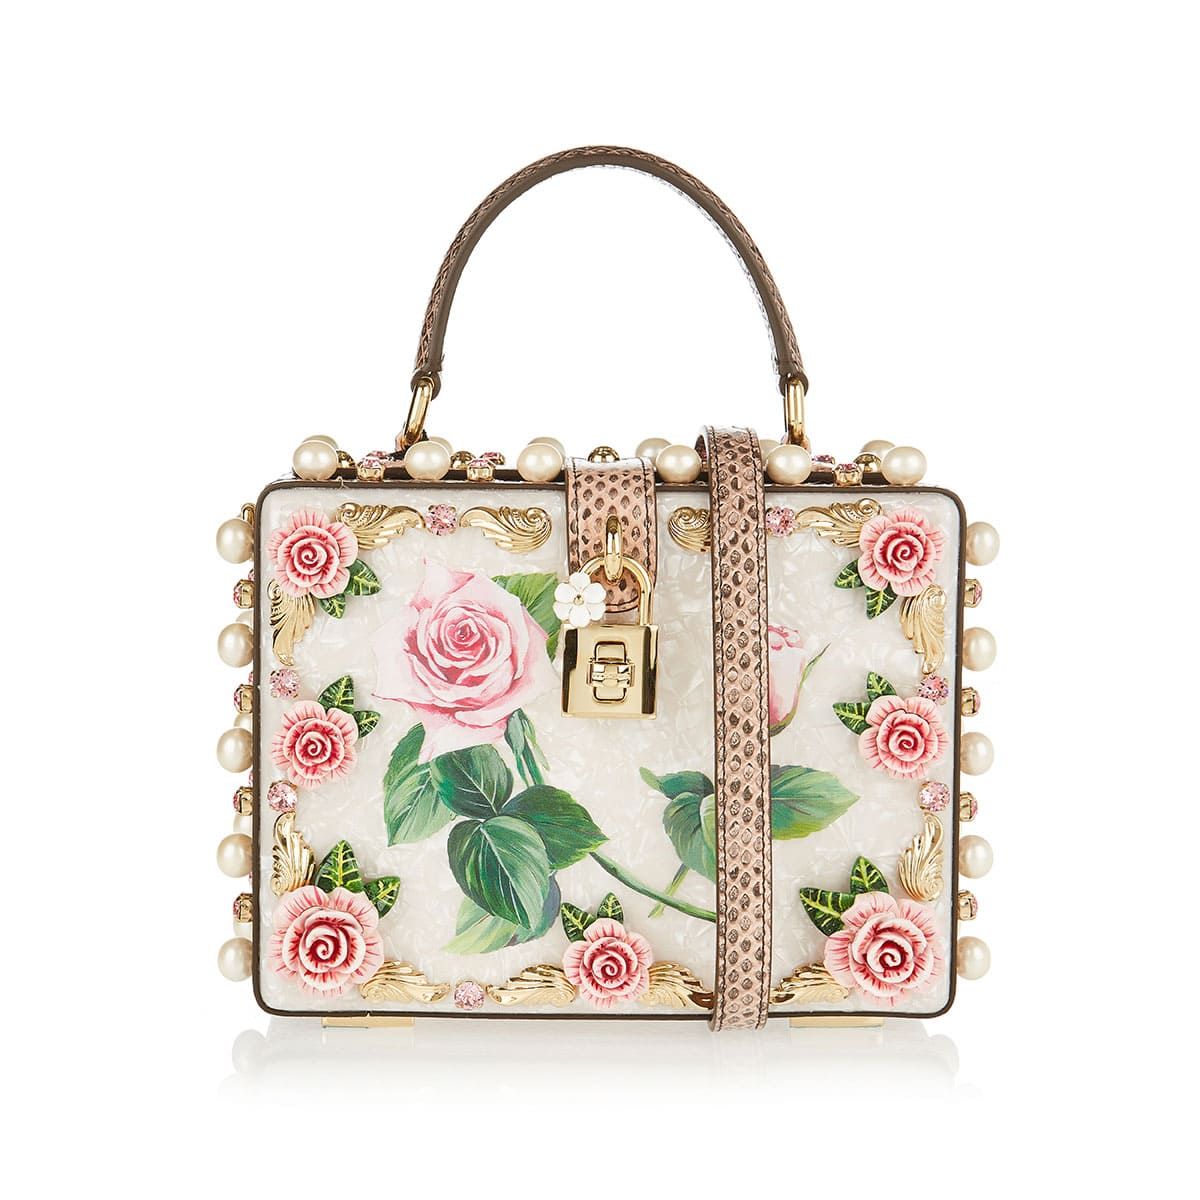 Embellished mother-of-pearl dolce box bag